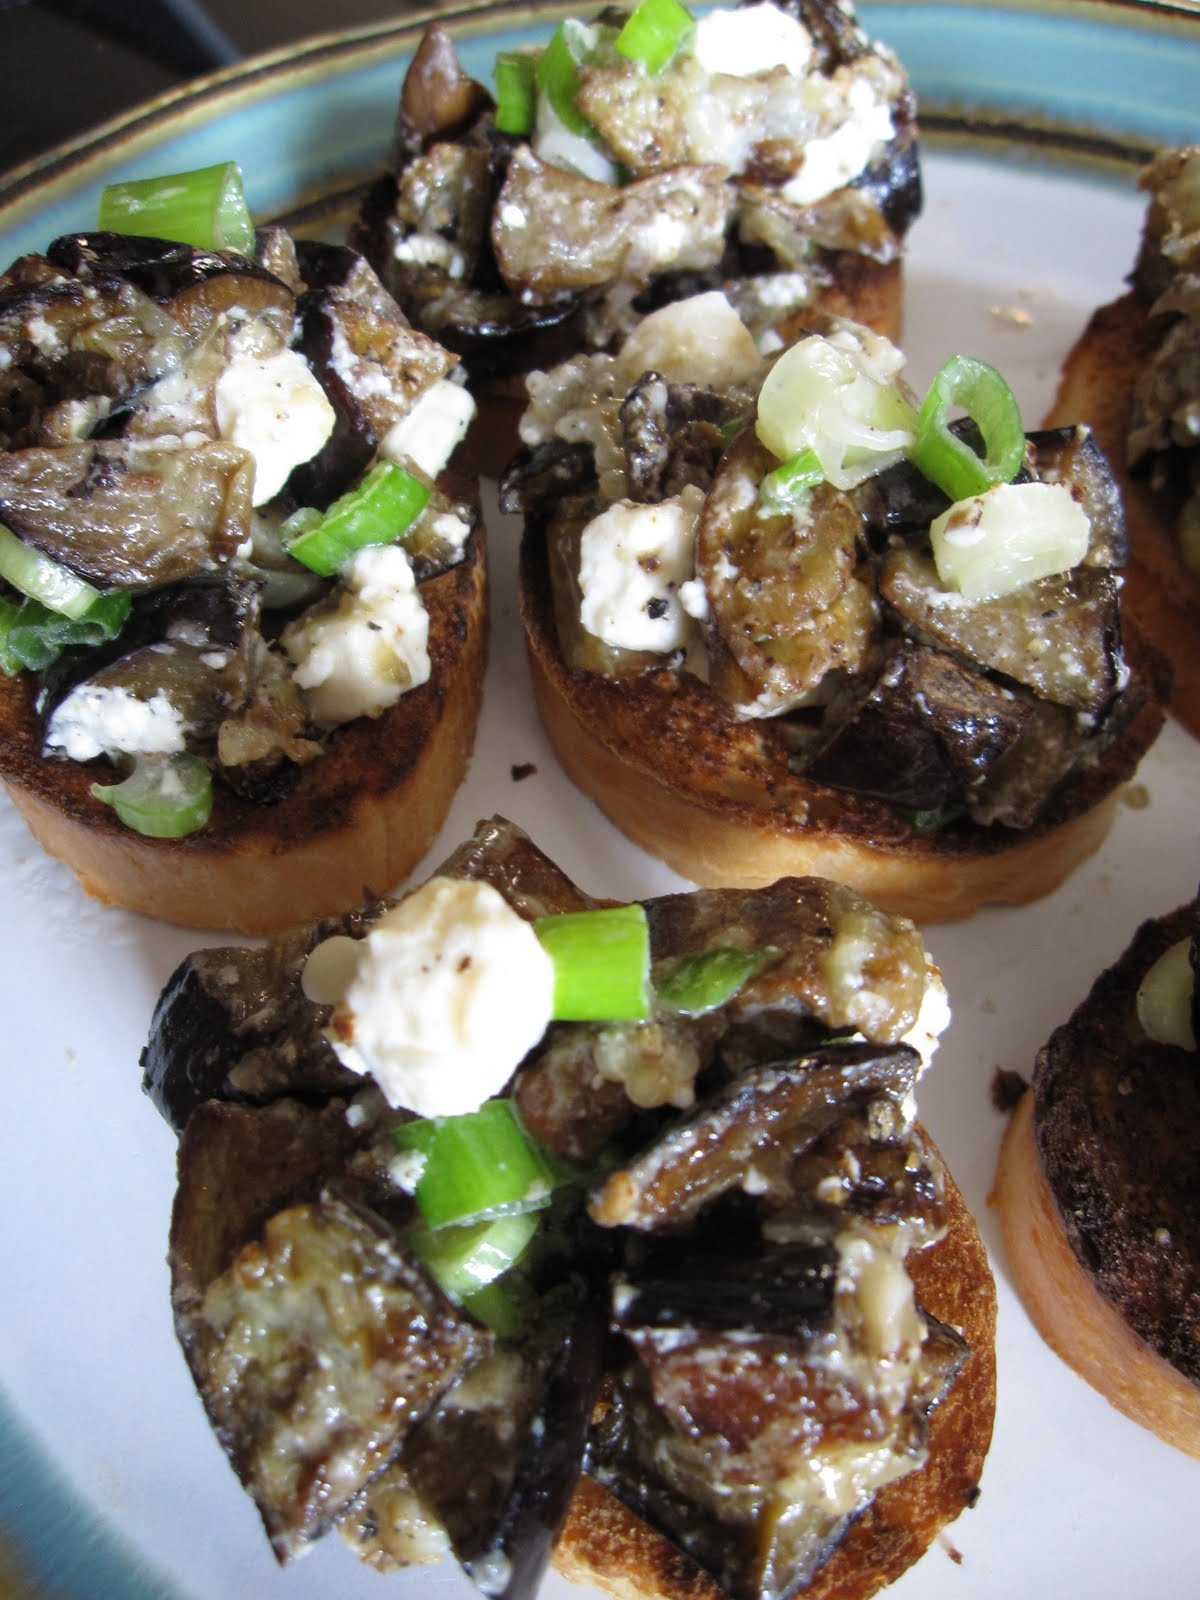 Cookin' & Craftin': Eggplant Feta Salad Toasts